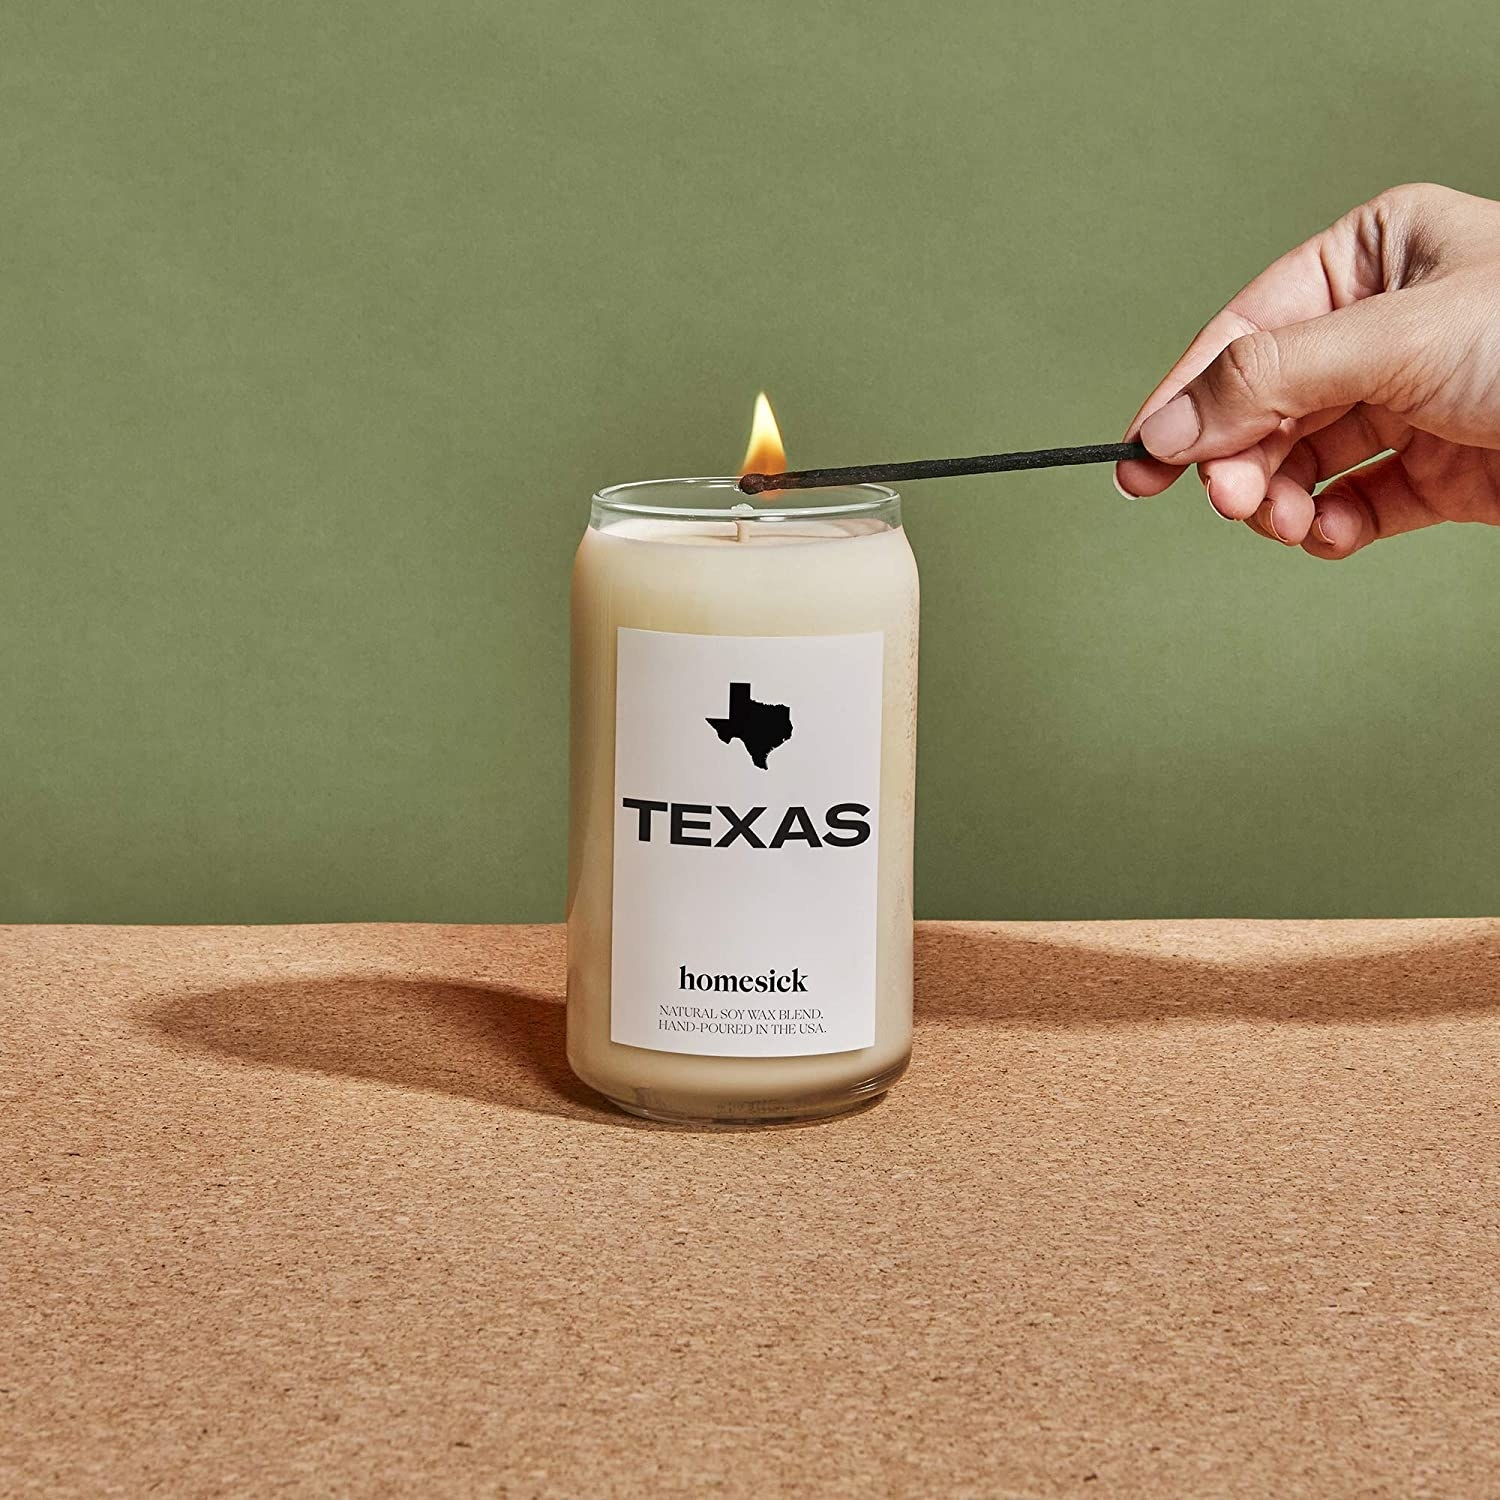 """a model lighting a cylinder candle that says """"texas"""" on it"""